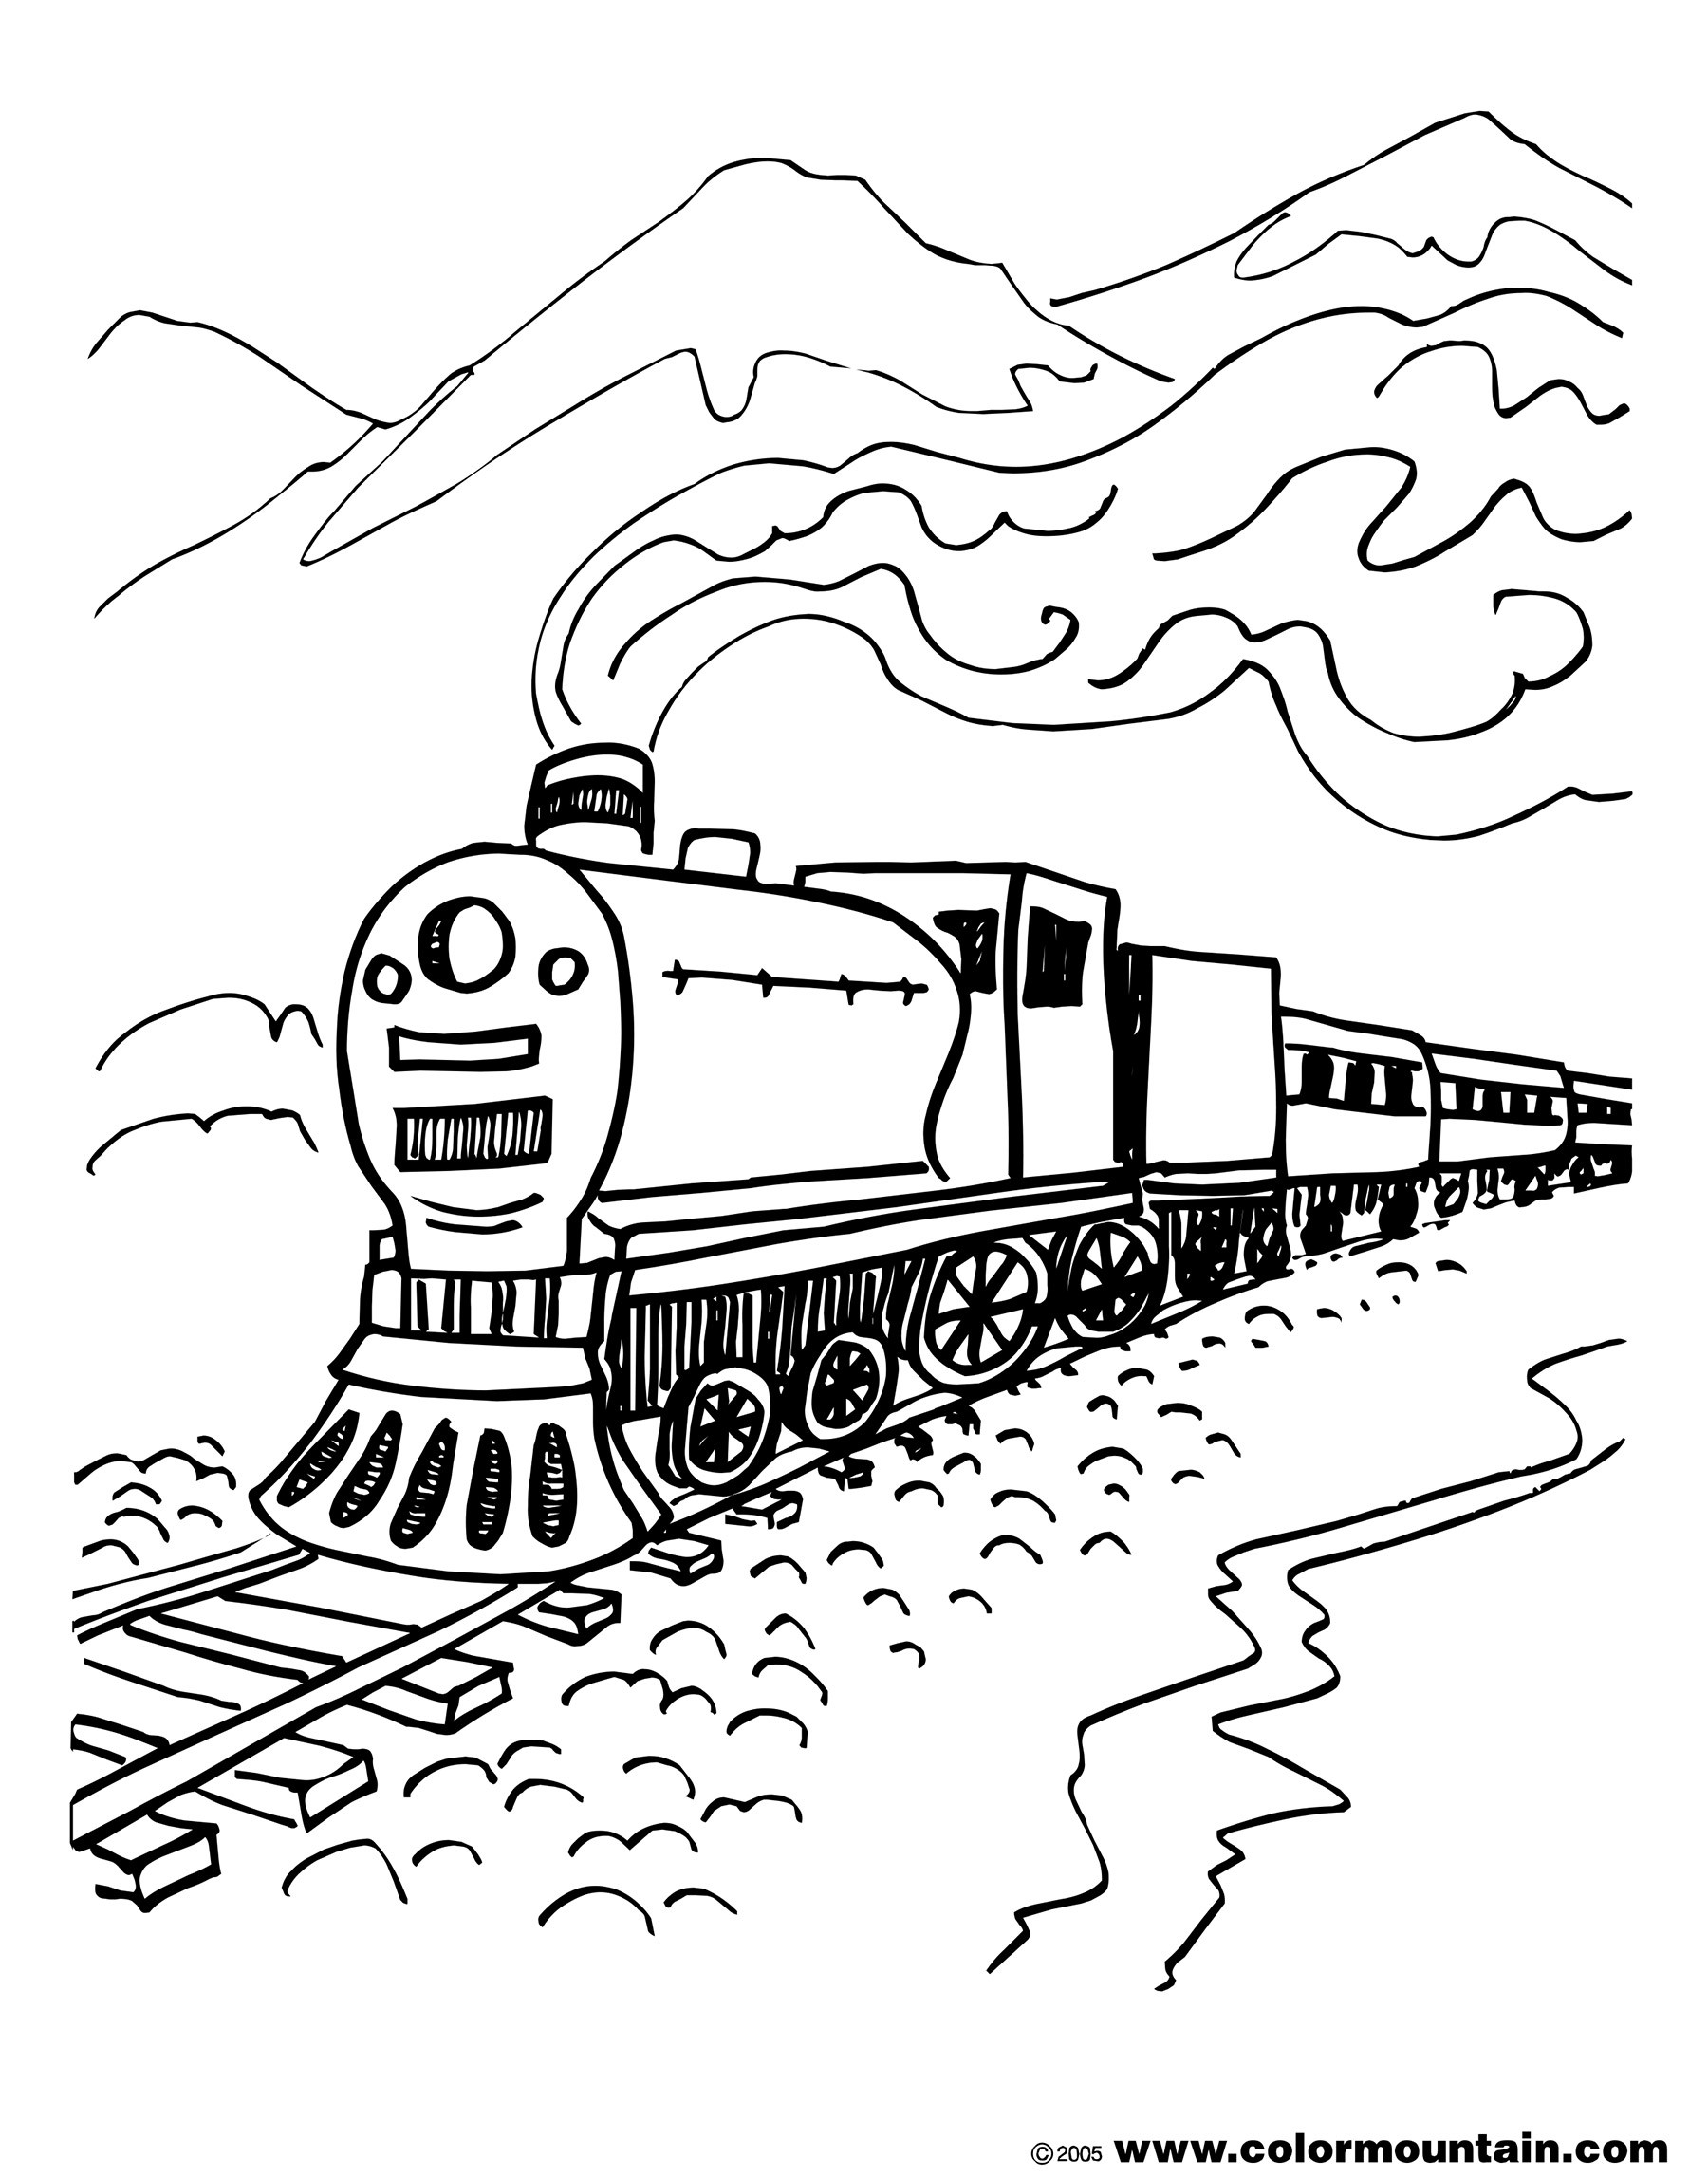 coloring pages trains amazing model steam train coloring page netart trains coloring pages